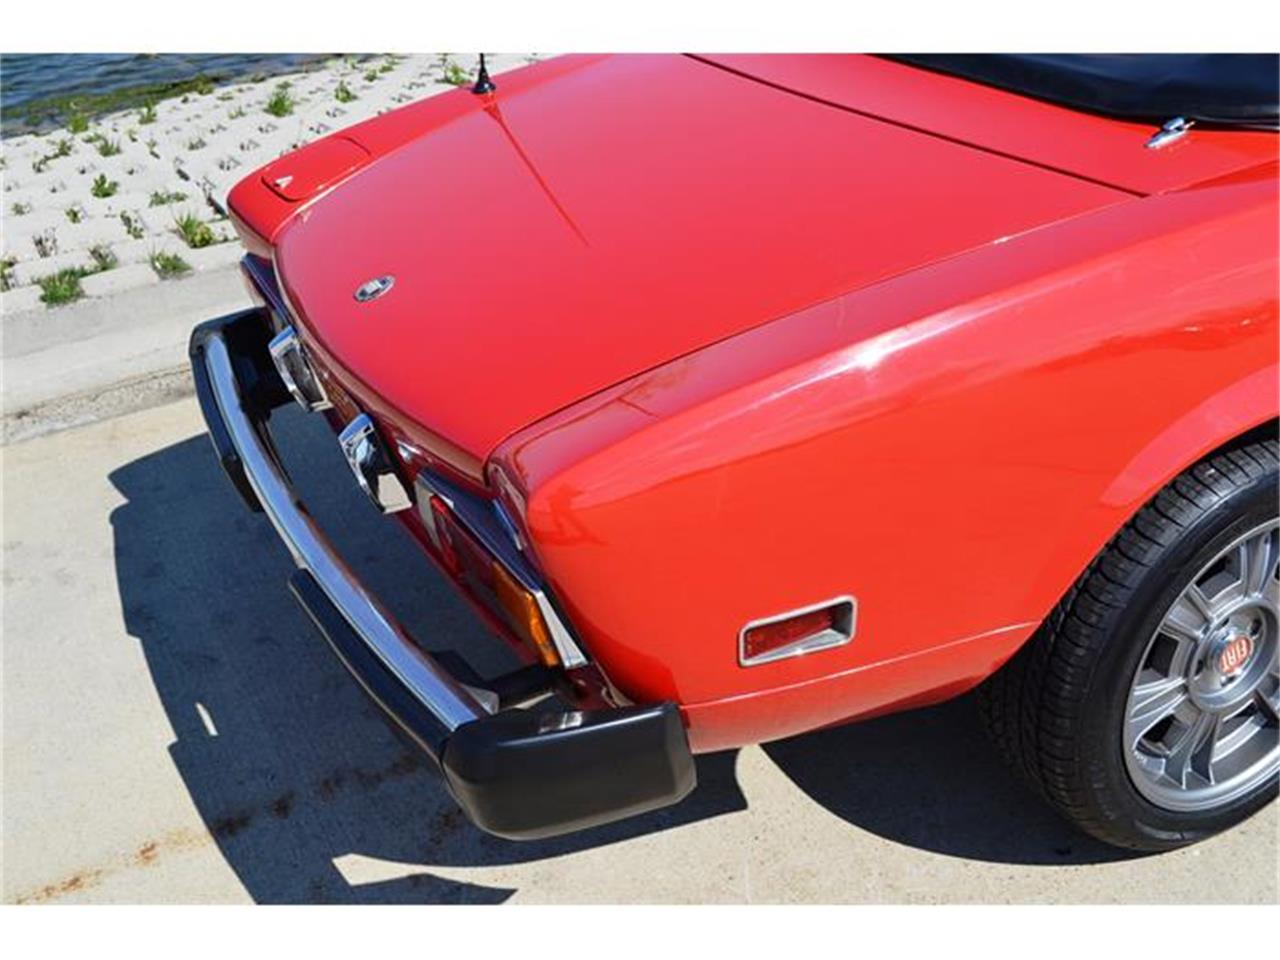 1977 Fiat 124 for sale in Barrington, IL – photo 3